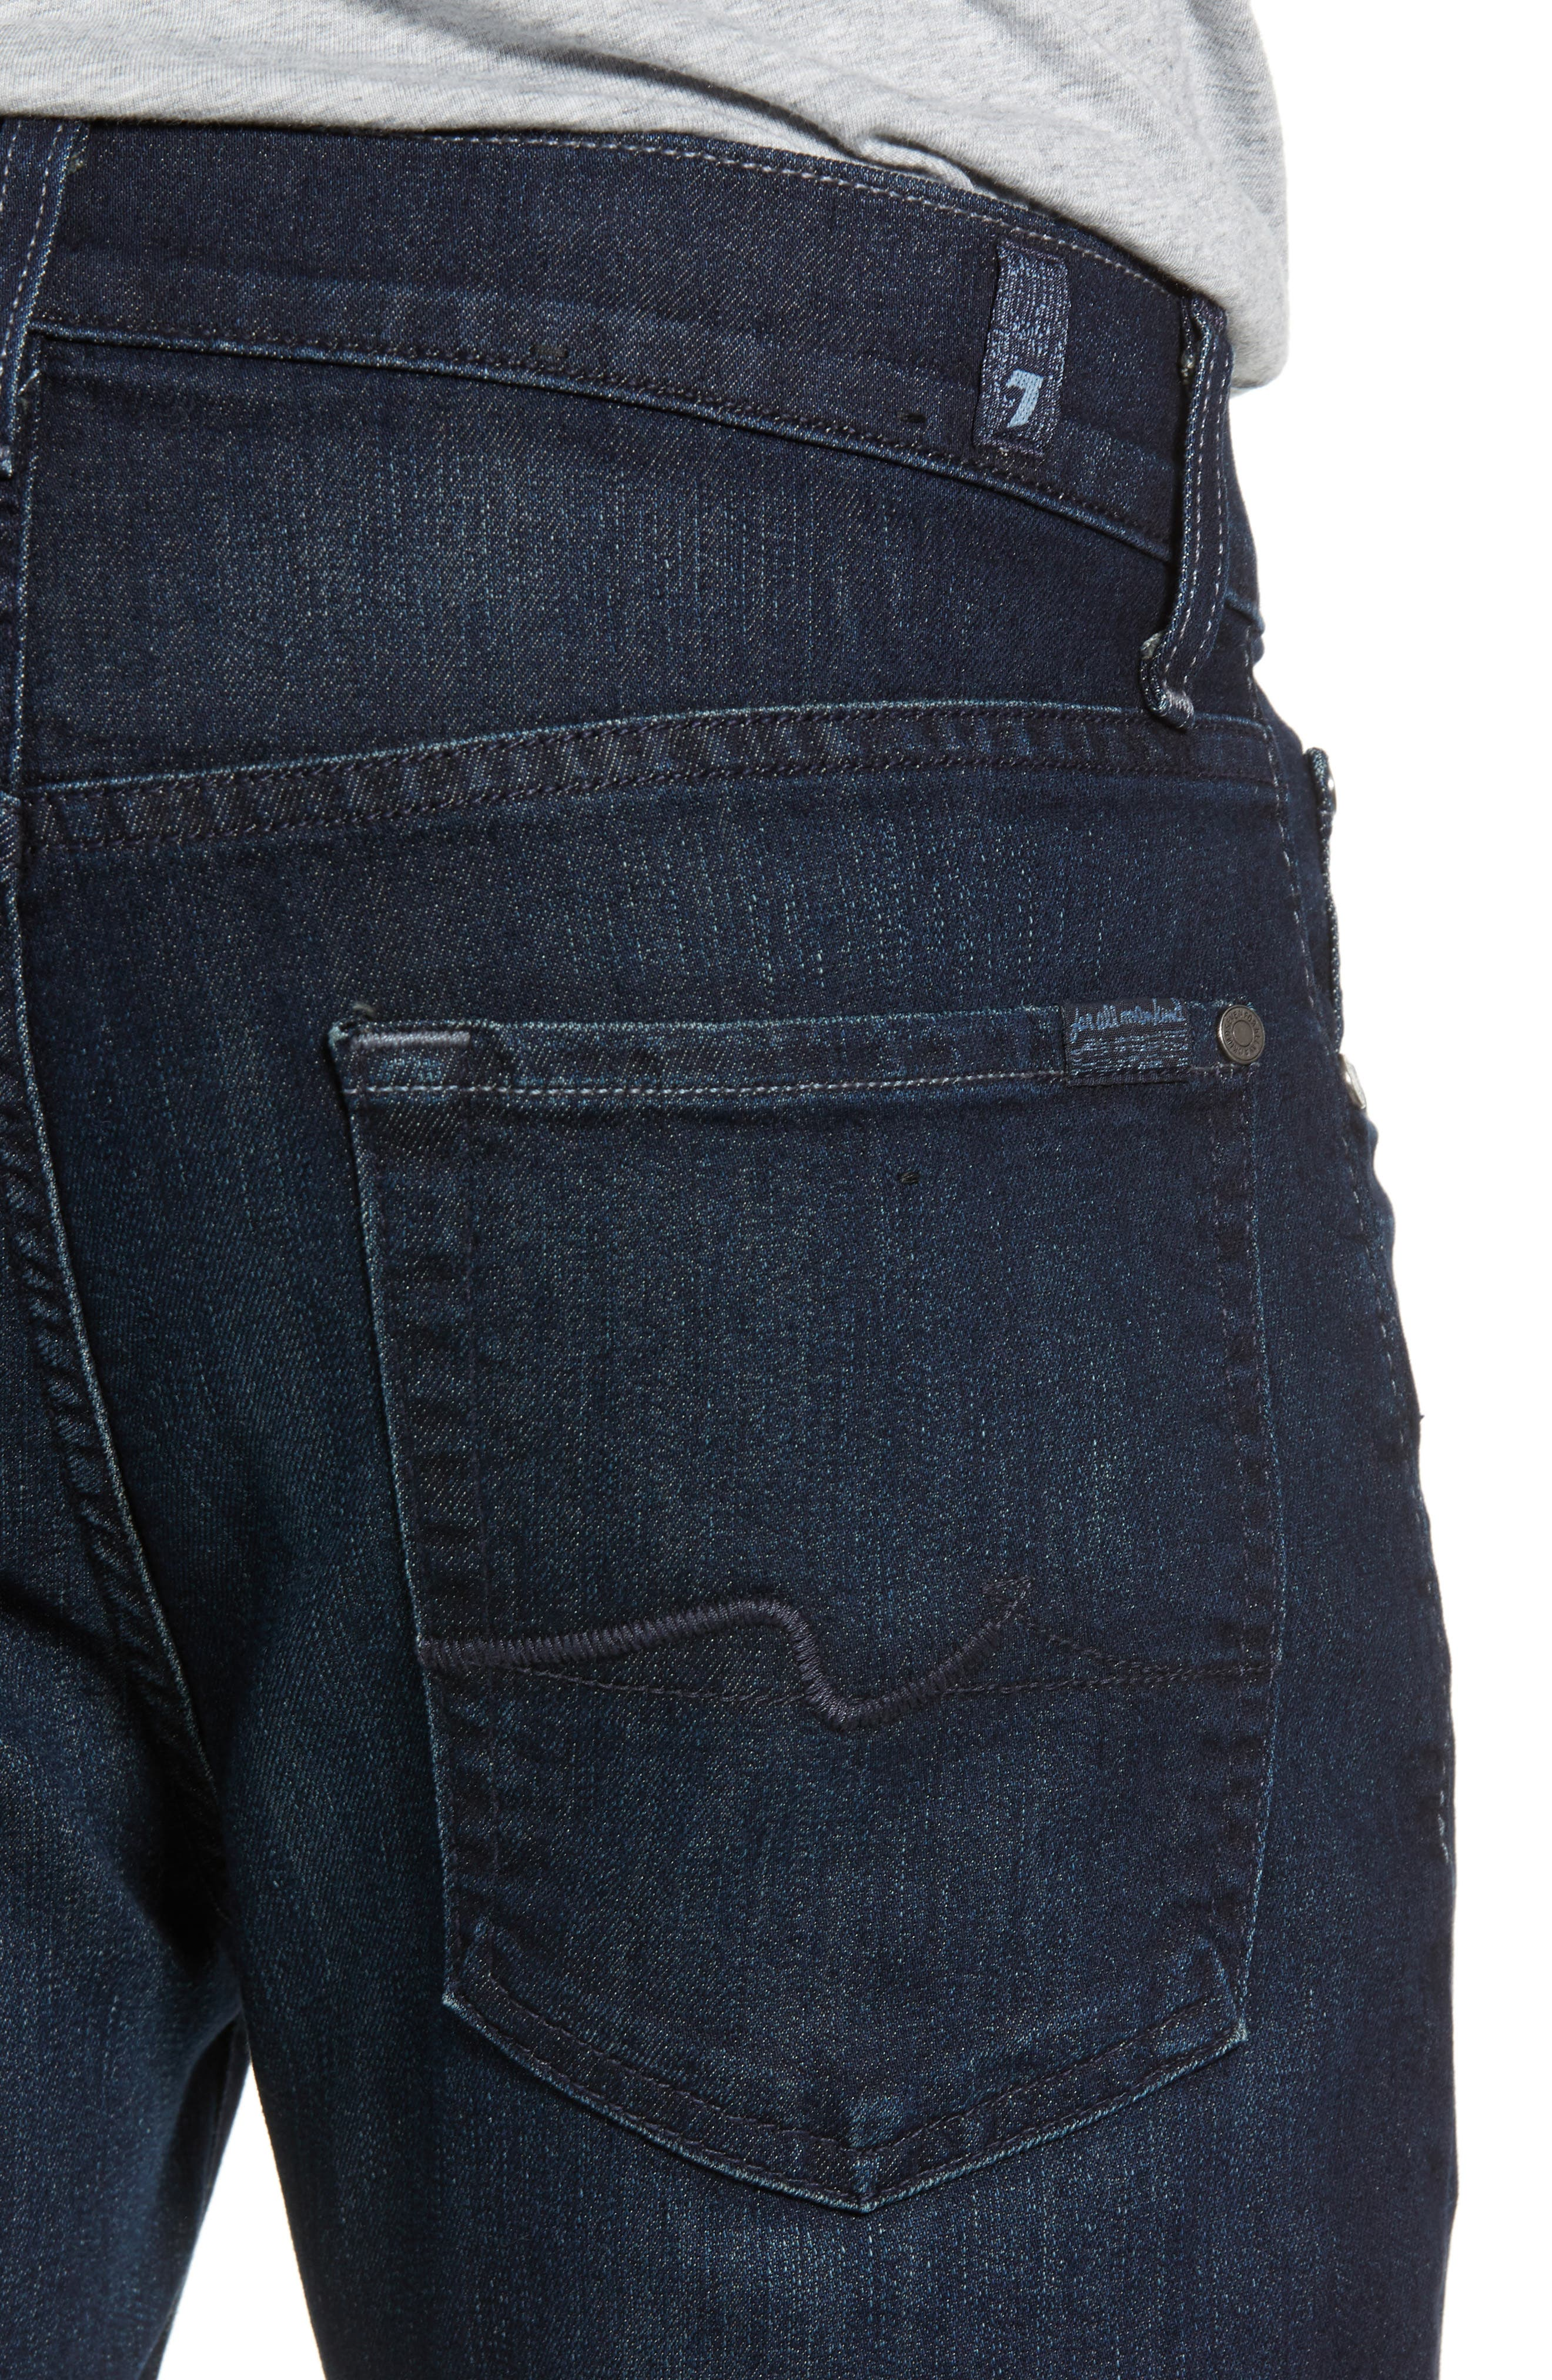 7 FOR ALL MANKIND<SUP>®</SUP>, Airweft Standard Straight Leg Jeans, Alternate thumbnail 4, color, 401